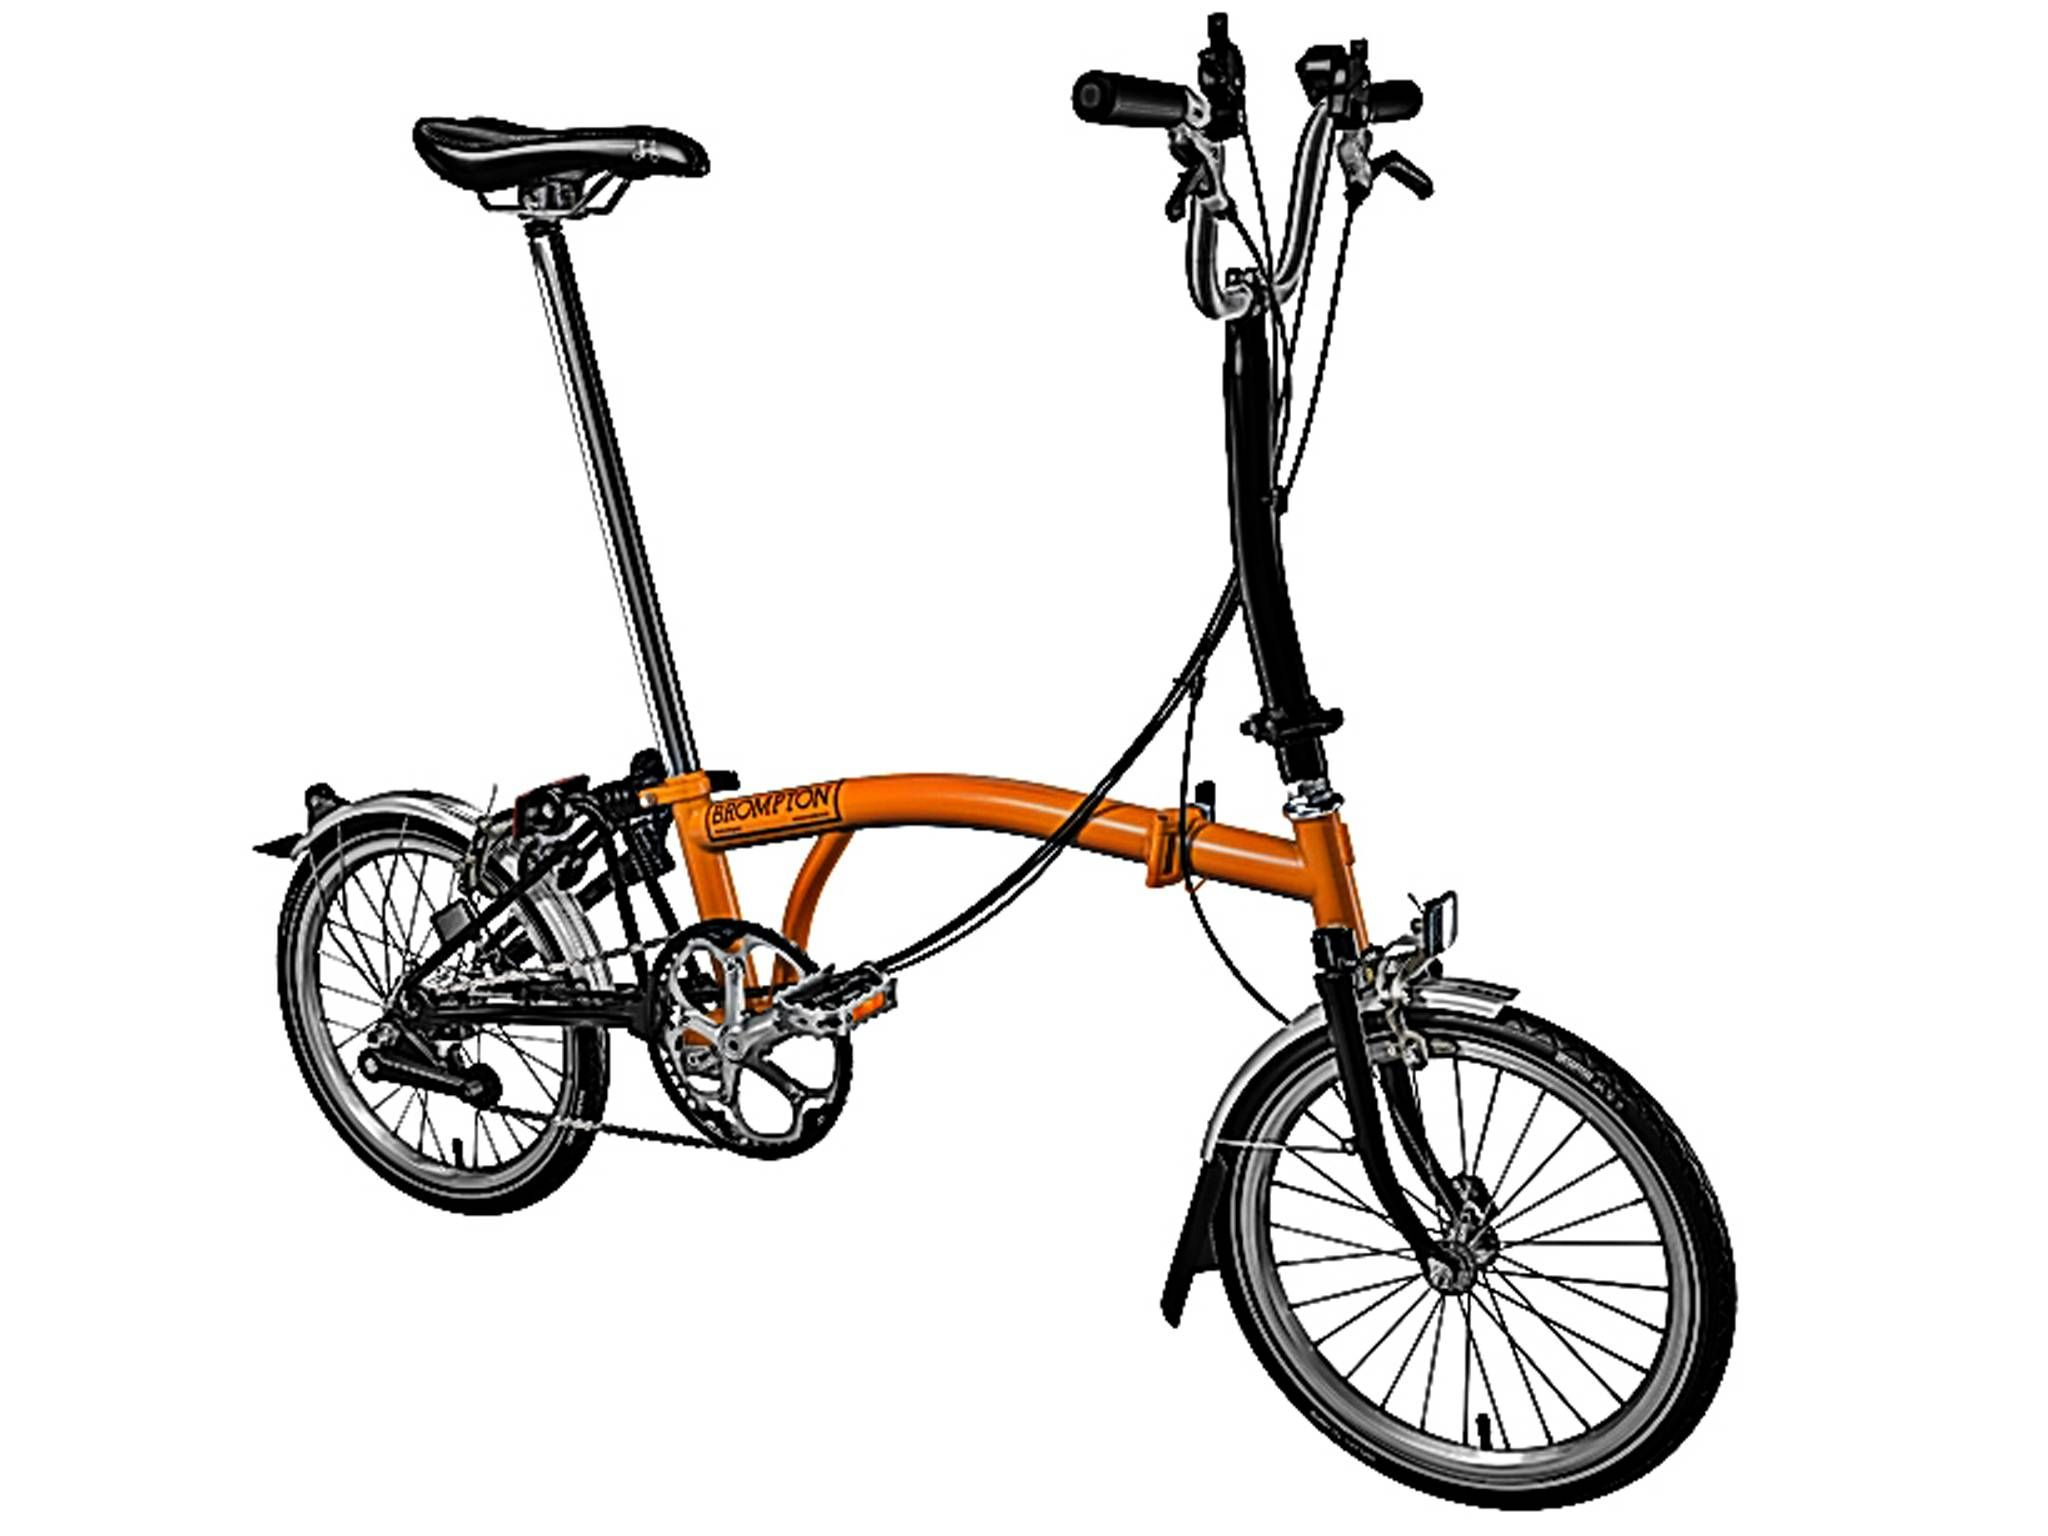 10 Best Folding Bikes For Commuting And Travel To Suit Every